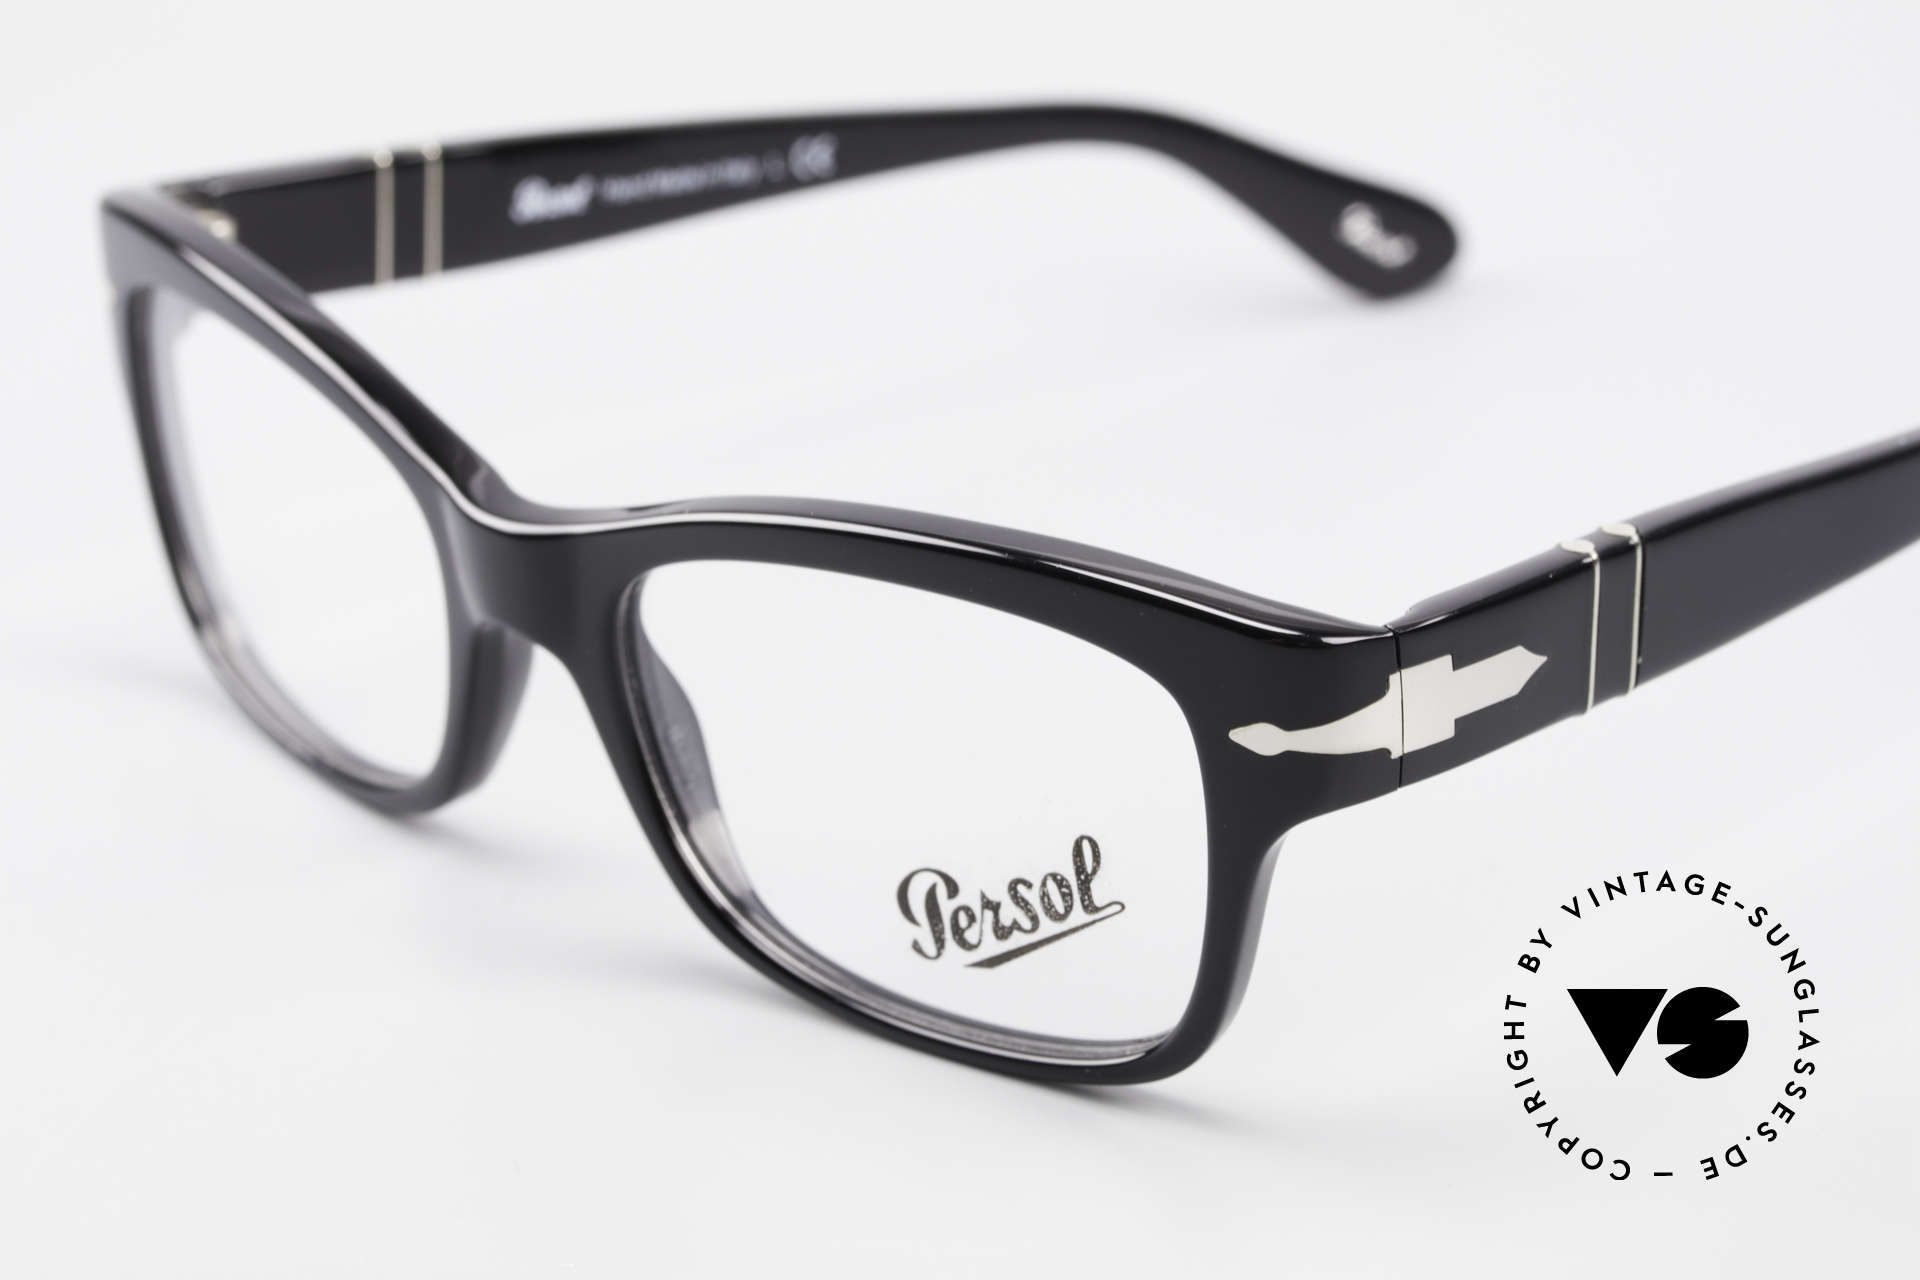 Persol 3054 Vintage Glasses Classic Frame, reissue of the old vintage Persol RATTI models, Made for Men and Women